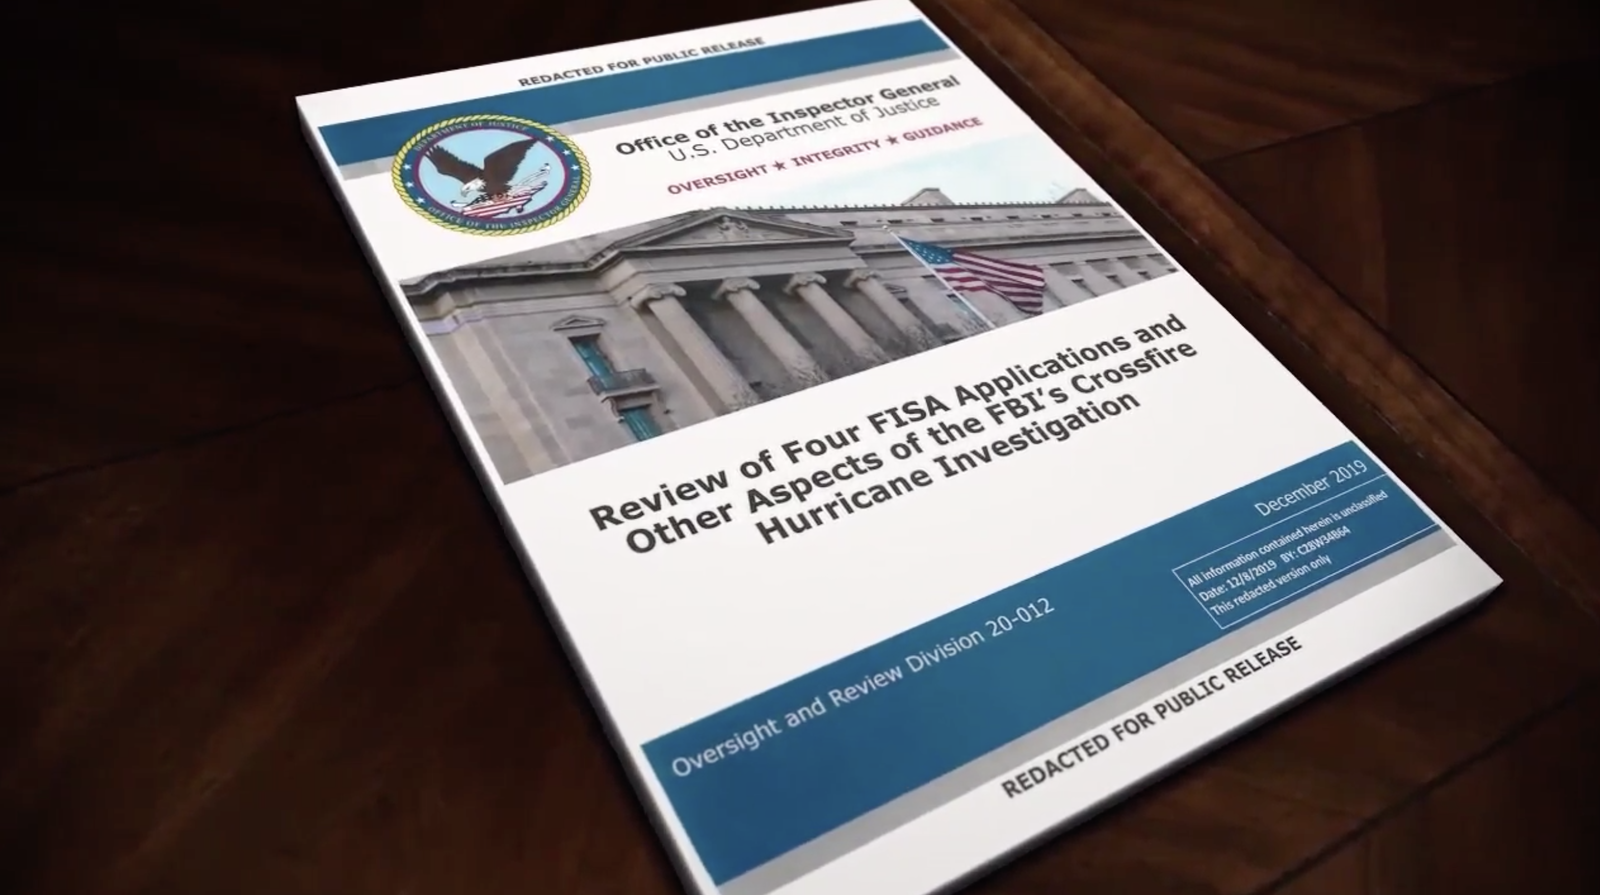 The cover page of the report issued by the Department of Justice inspector general is photographed in Washington, Monday, Dec. 9, 2019. The report on the origins of the Russia probe found no evidence of political bias, despite performance failures. (Photo: Sinclair Broadcast Group)